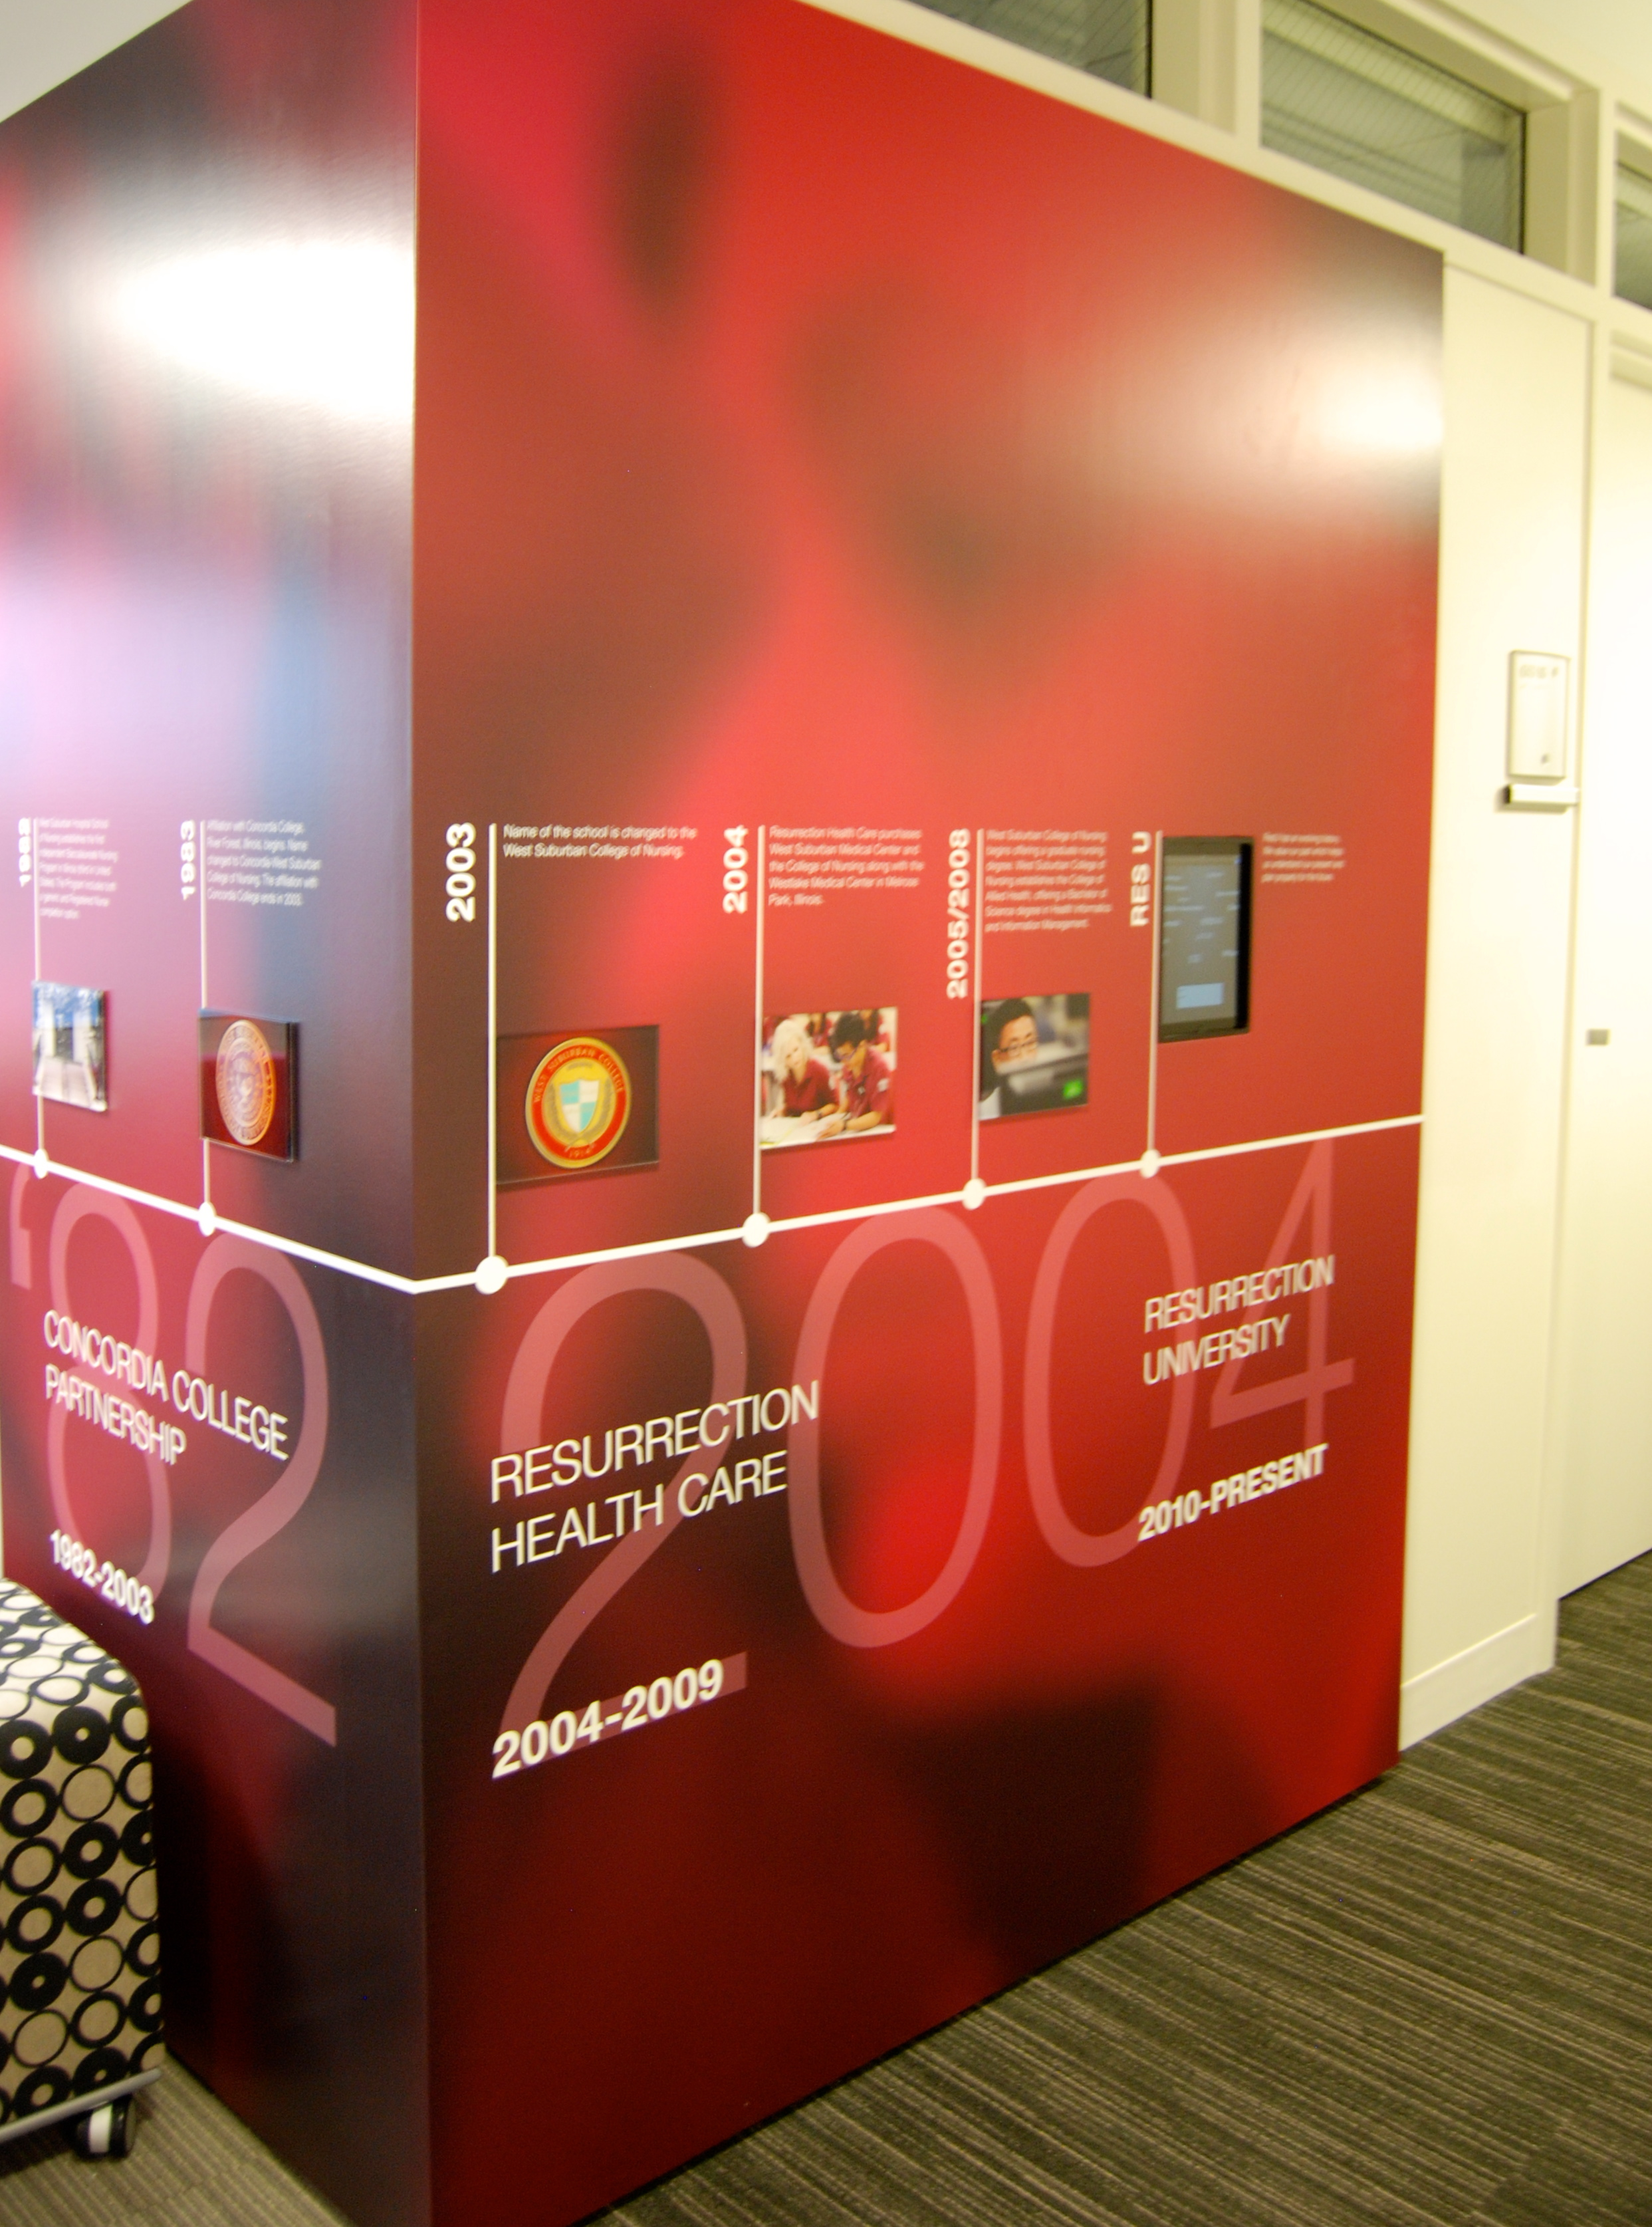 Printed digital imaging, silkscreening, photo imaging, acrylic work, vinyl copy, and installation by Ndio. Design by Perkins+Will.